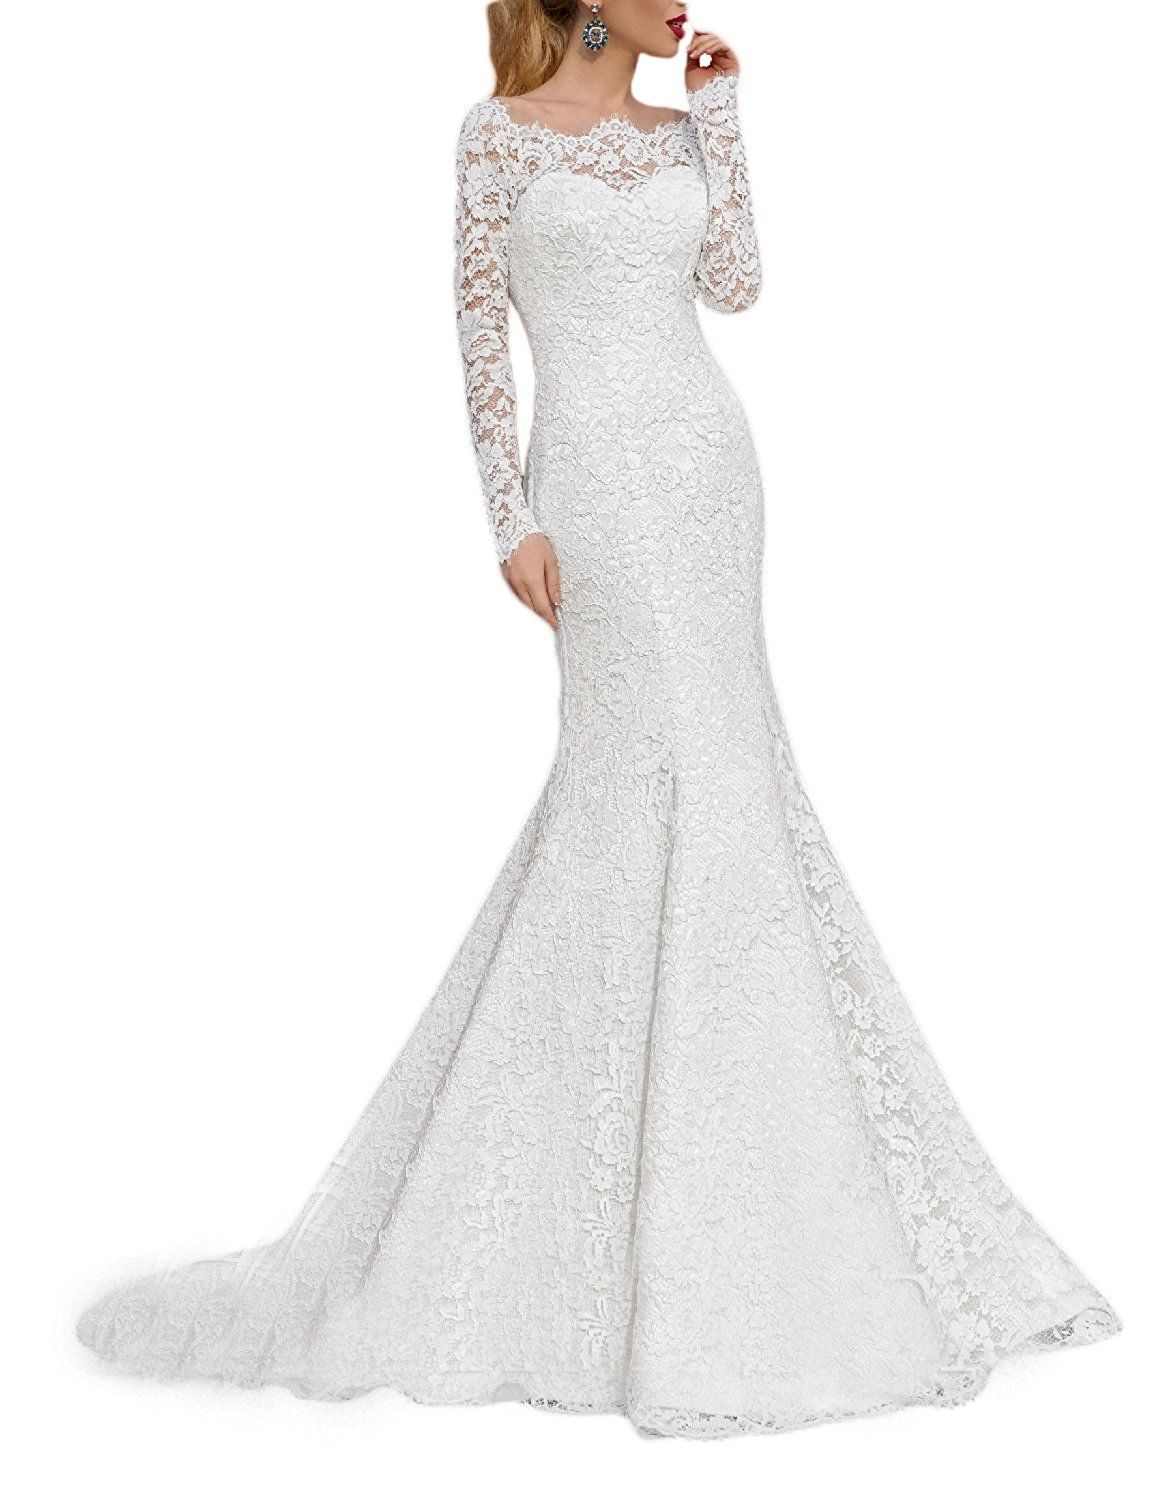 ef43df05dfb9 RightBride Womens White Lace Mermaid Wedding Dresses for Bride Long Sleeves  Boat Neck Bride Dress 2017 Size -- You can find more details by visiting  the ...